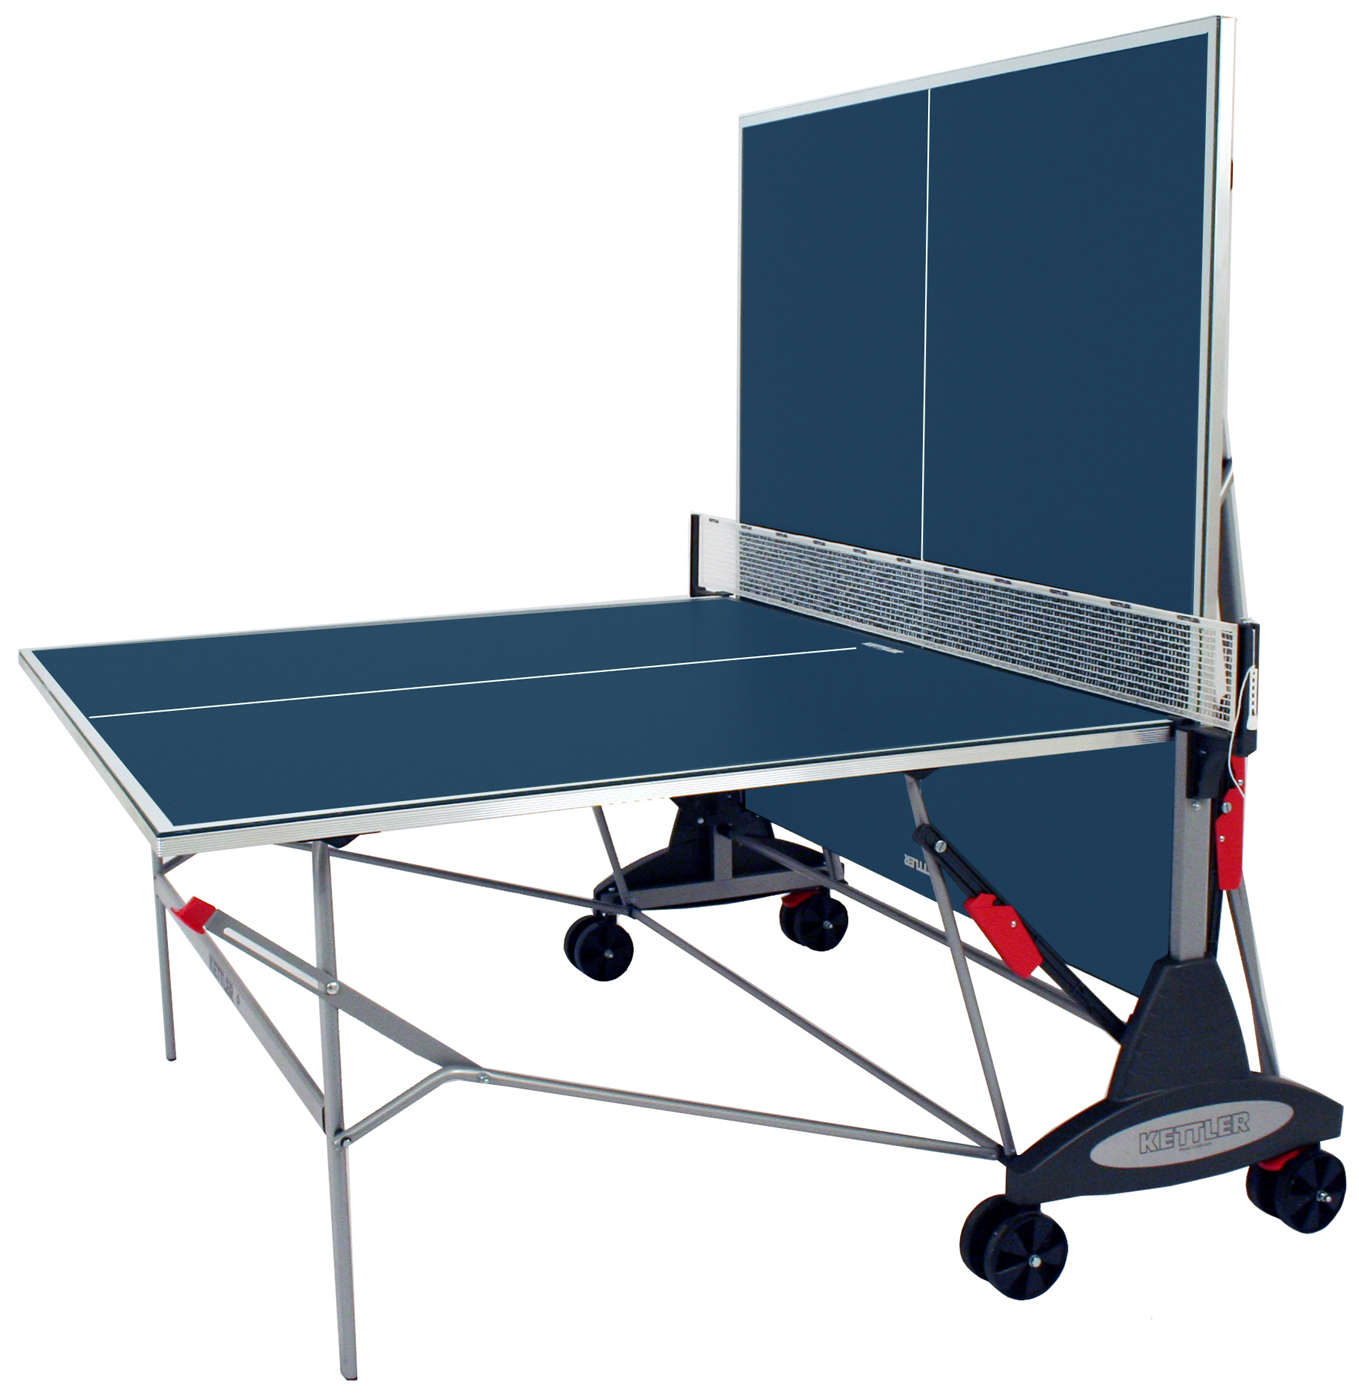 Table ping pong exterieur kettler table de lit - Table de ping pong exterieur pas cher ...